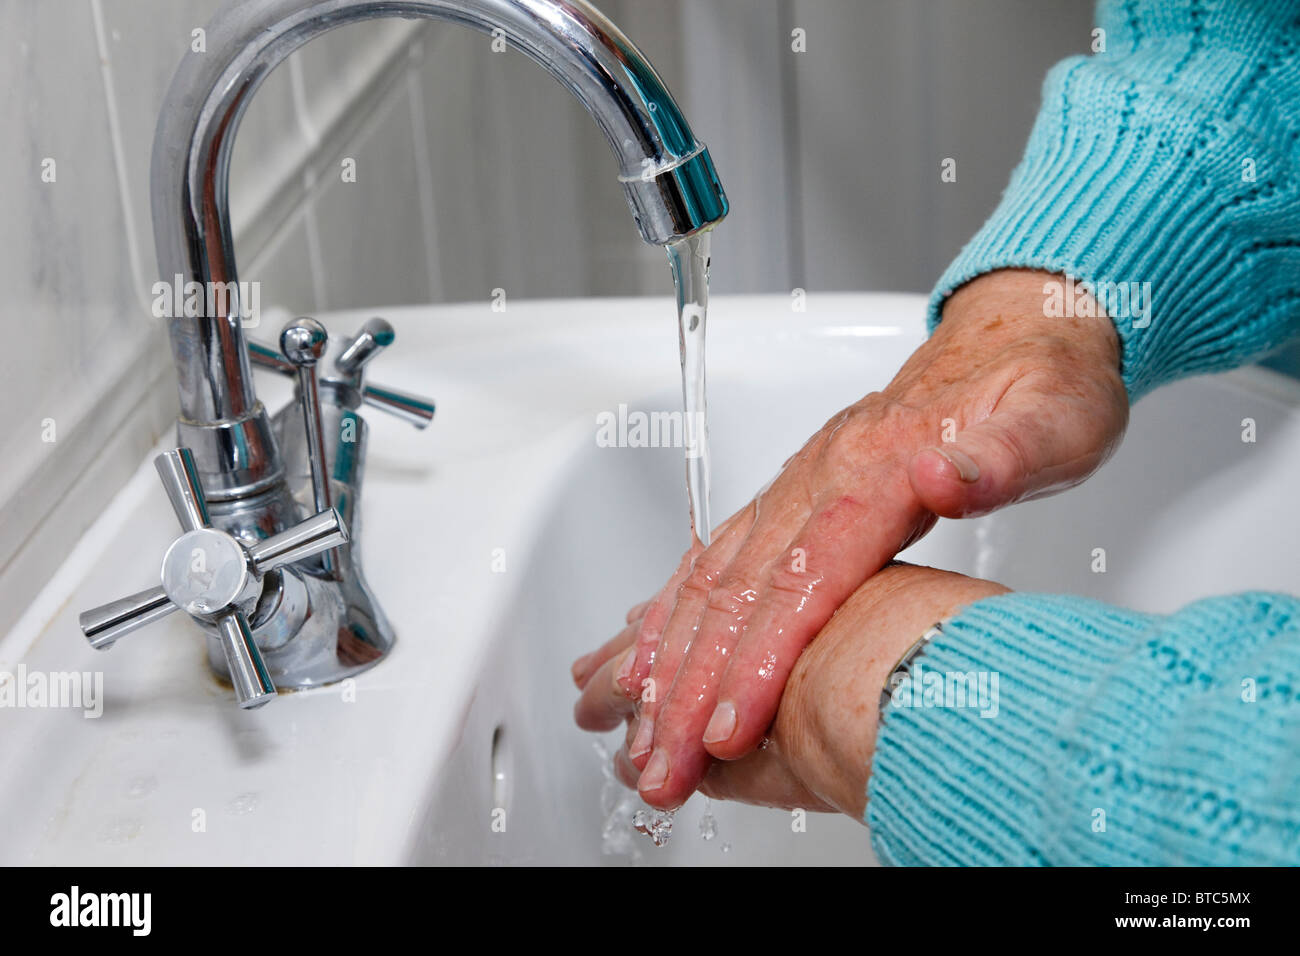 Senior woman washing hands with tap water running into a handbasin. - Stock Image